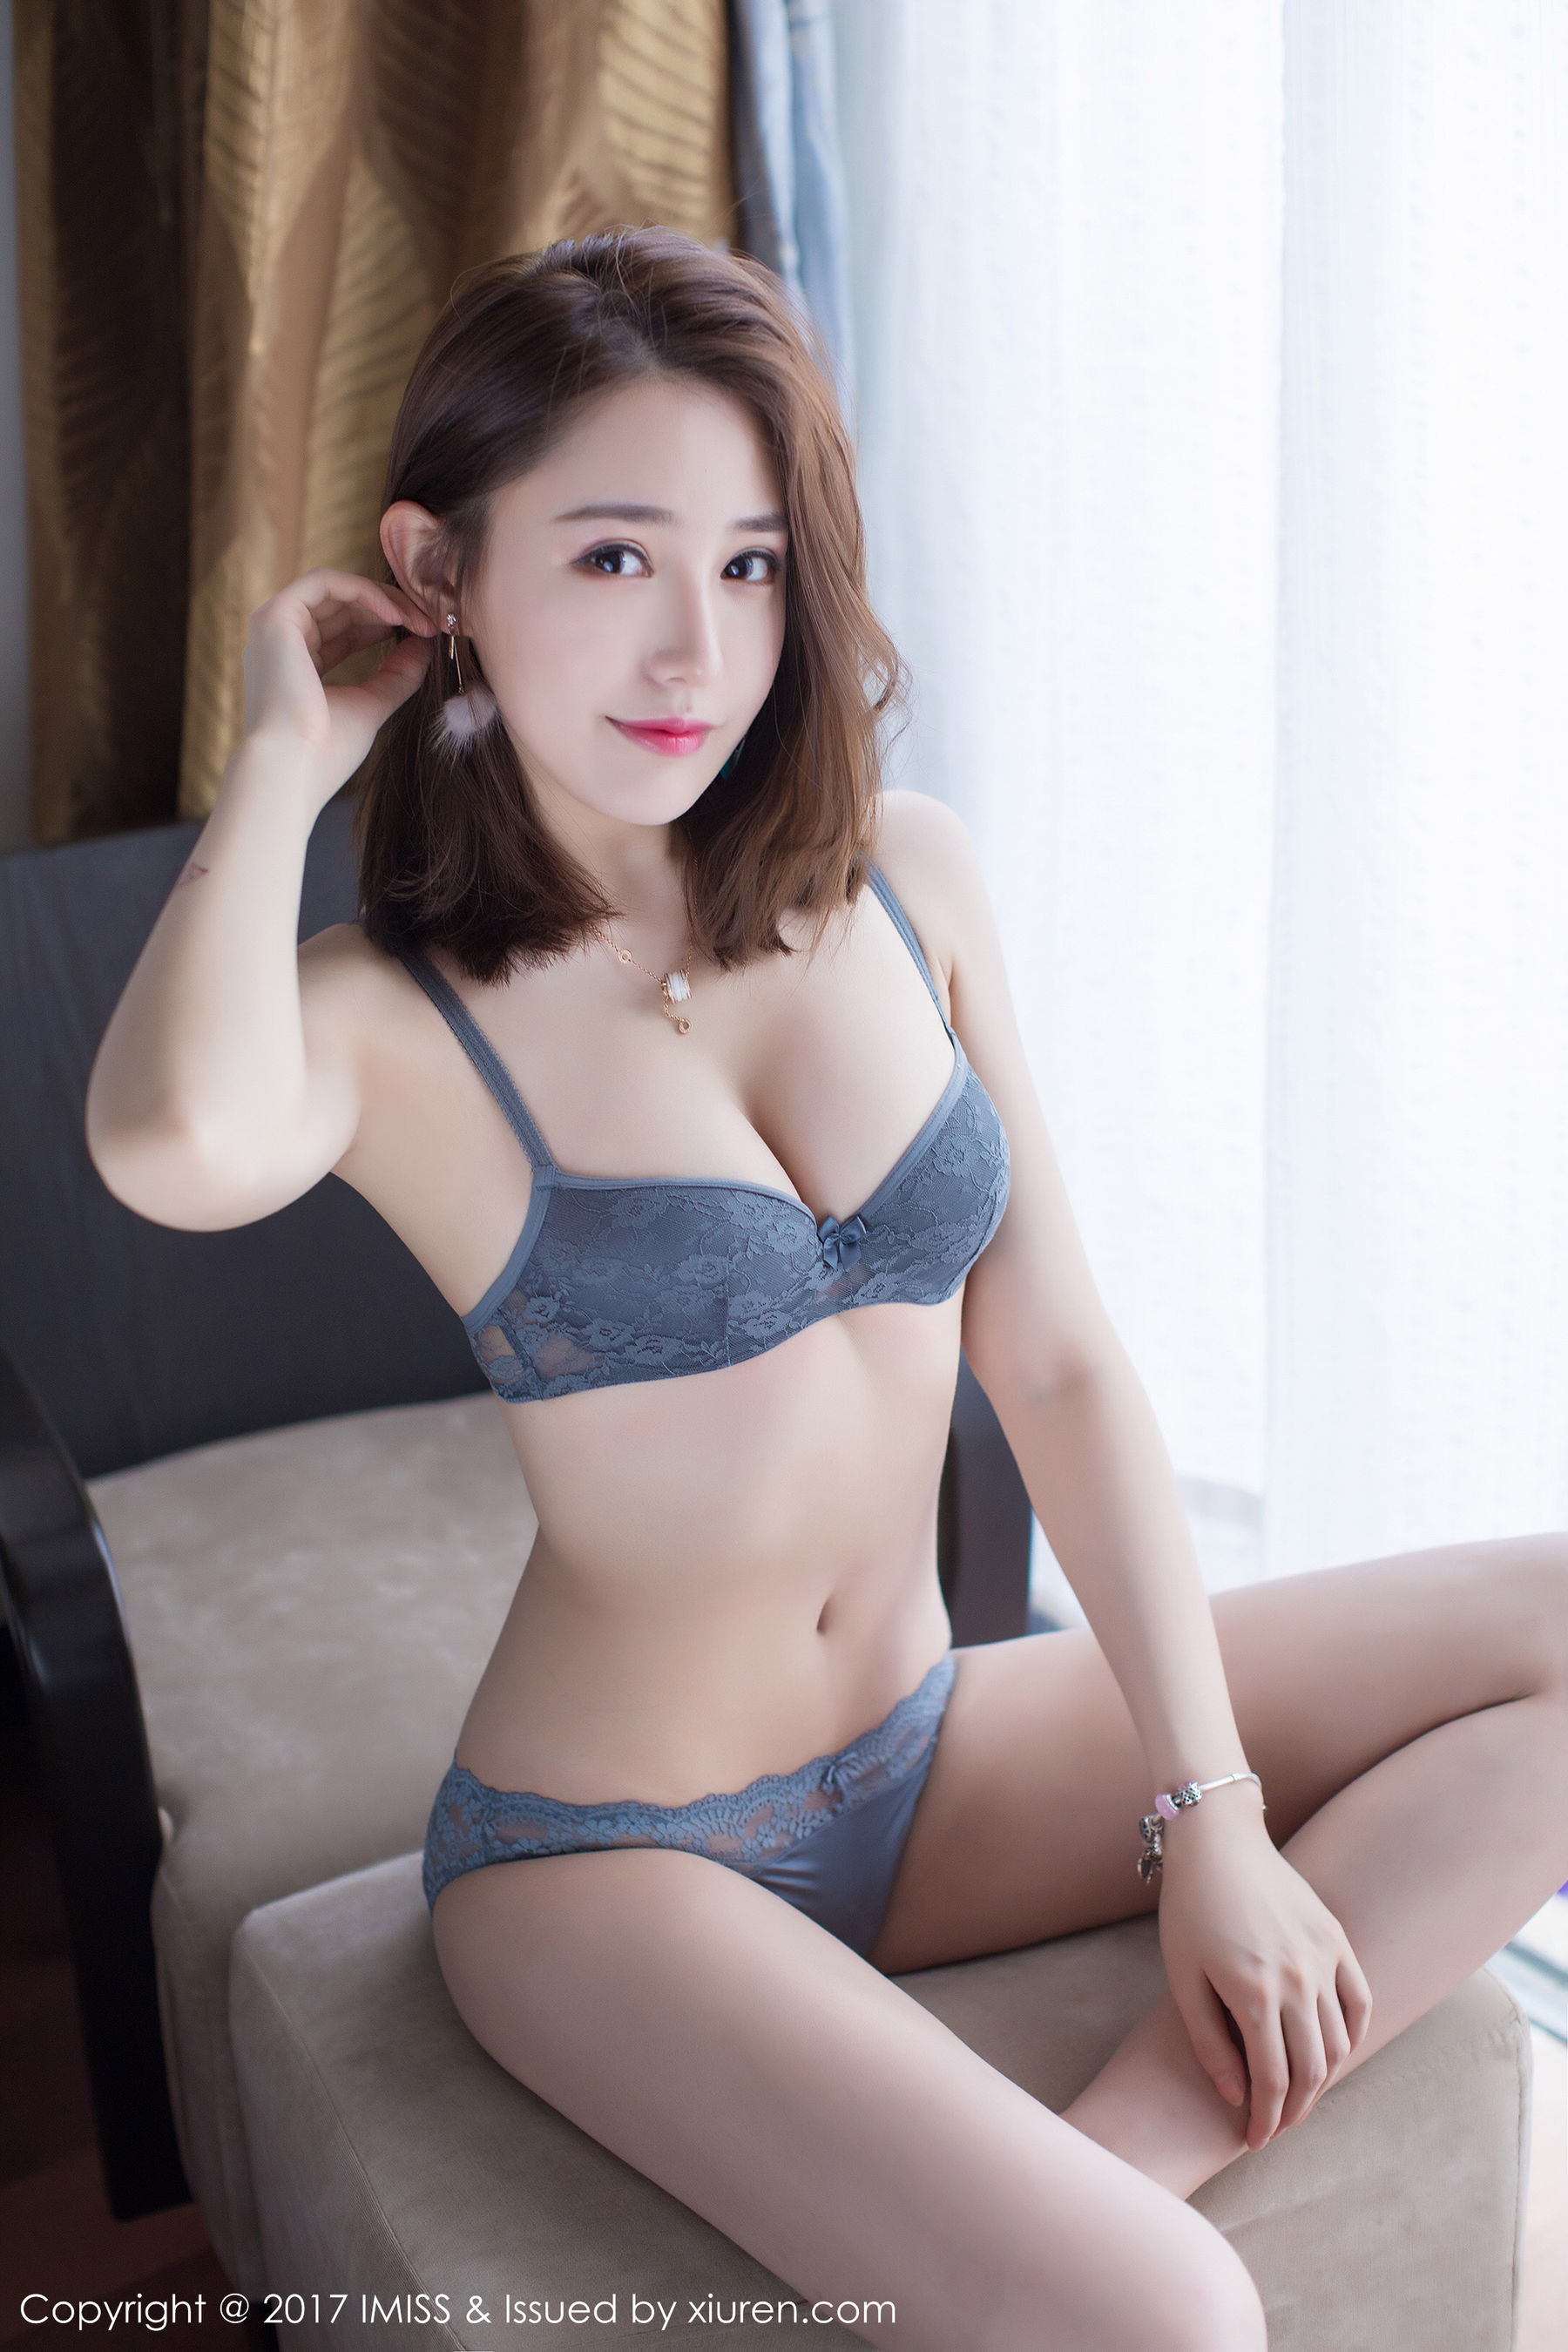 beautiful Chinese girl in lingerie